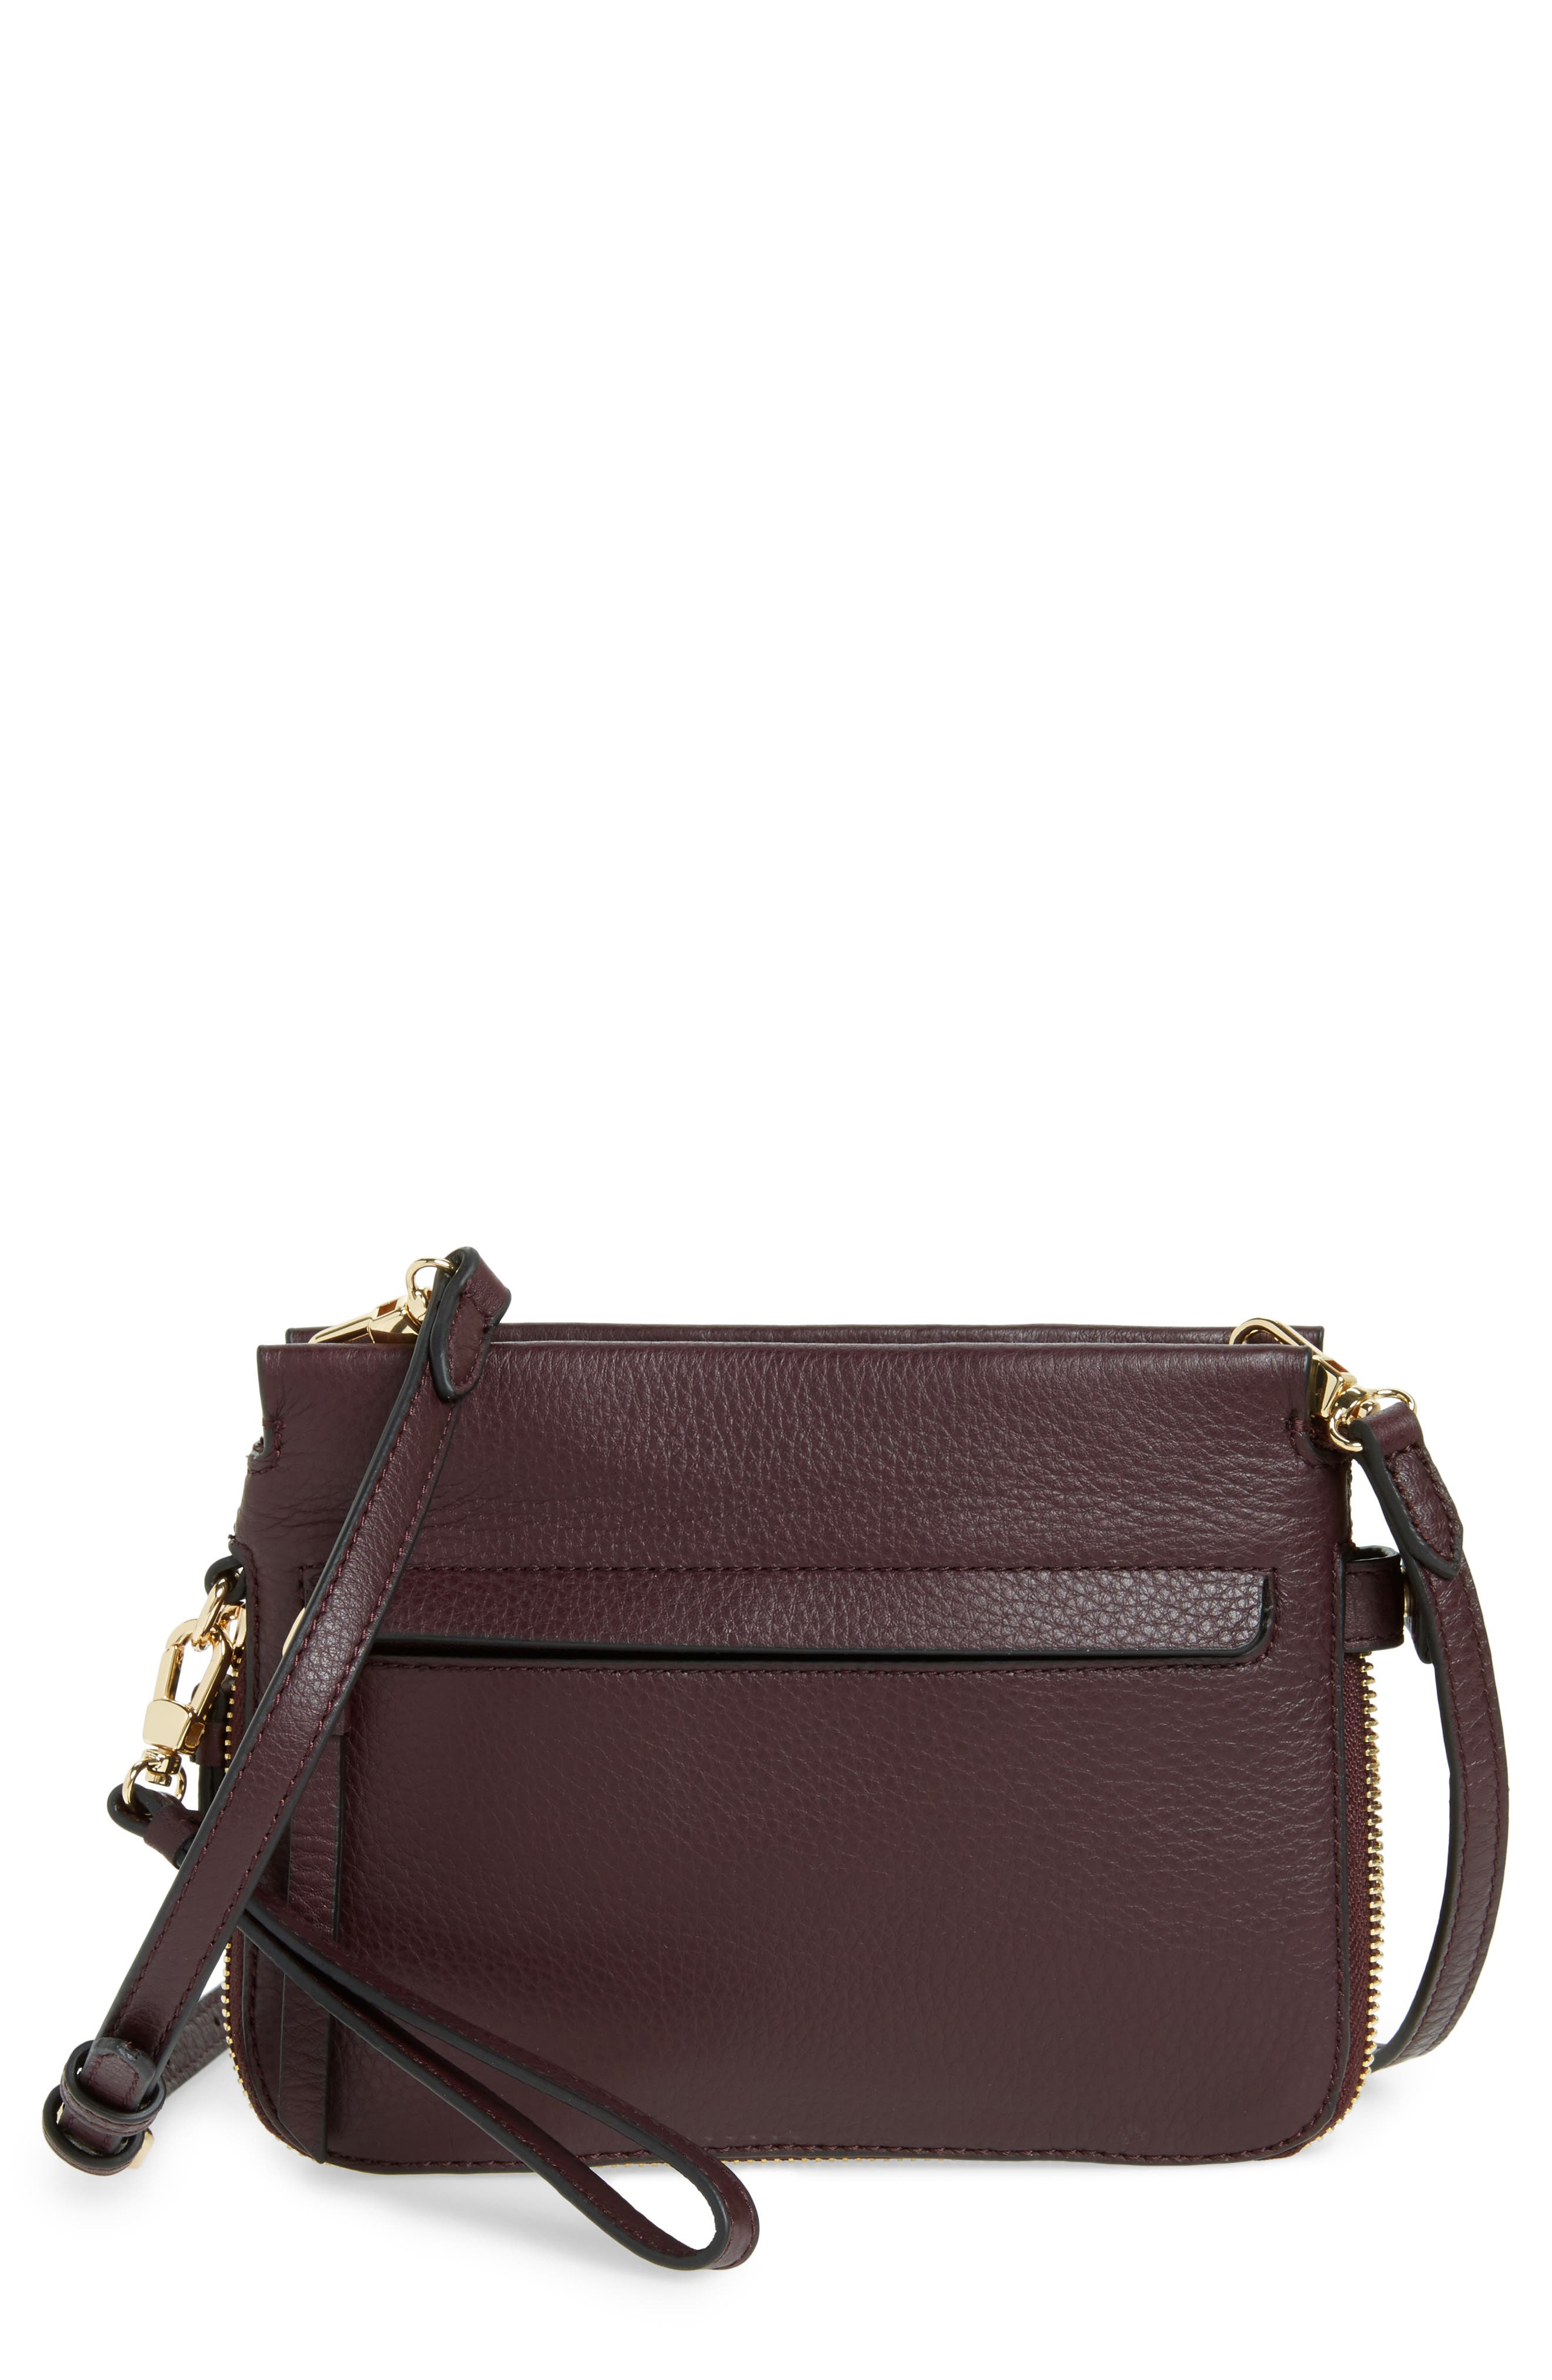 Vince Camuto Small Edsel Leather Crossbody Bag